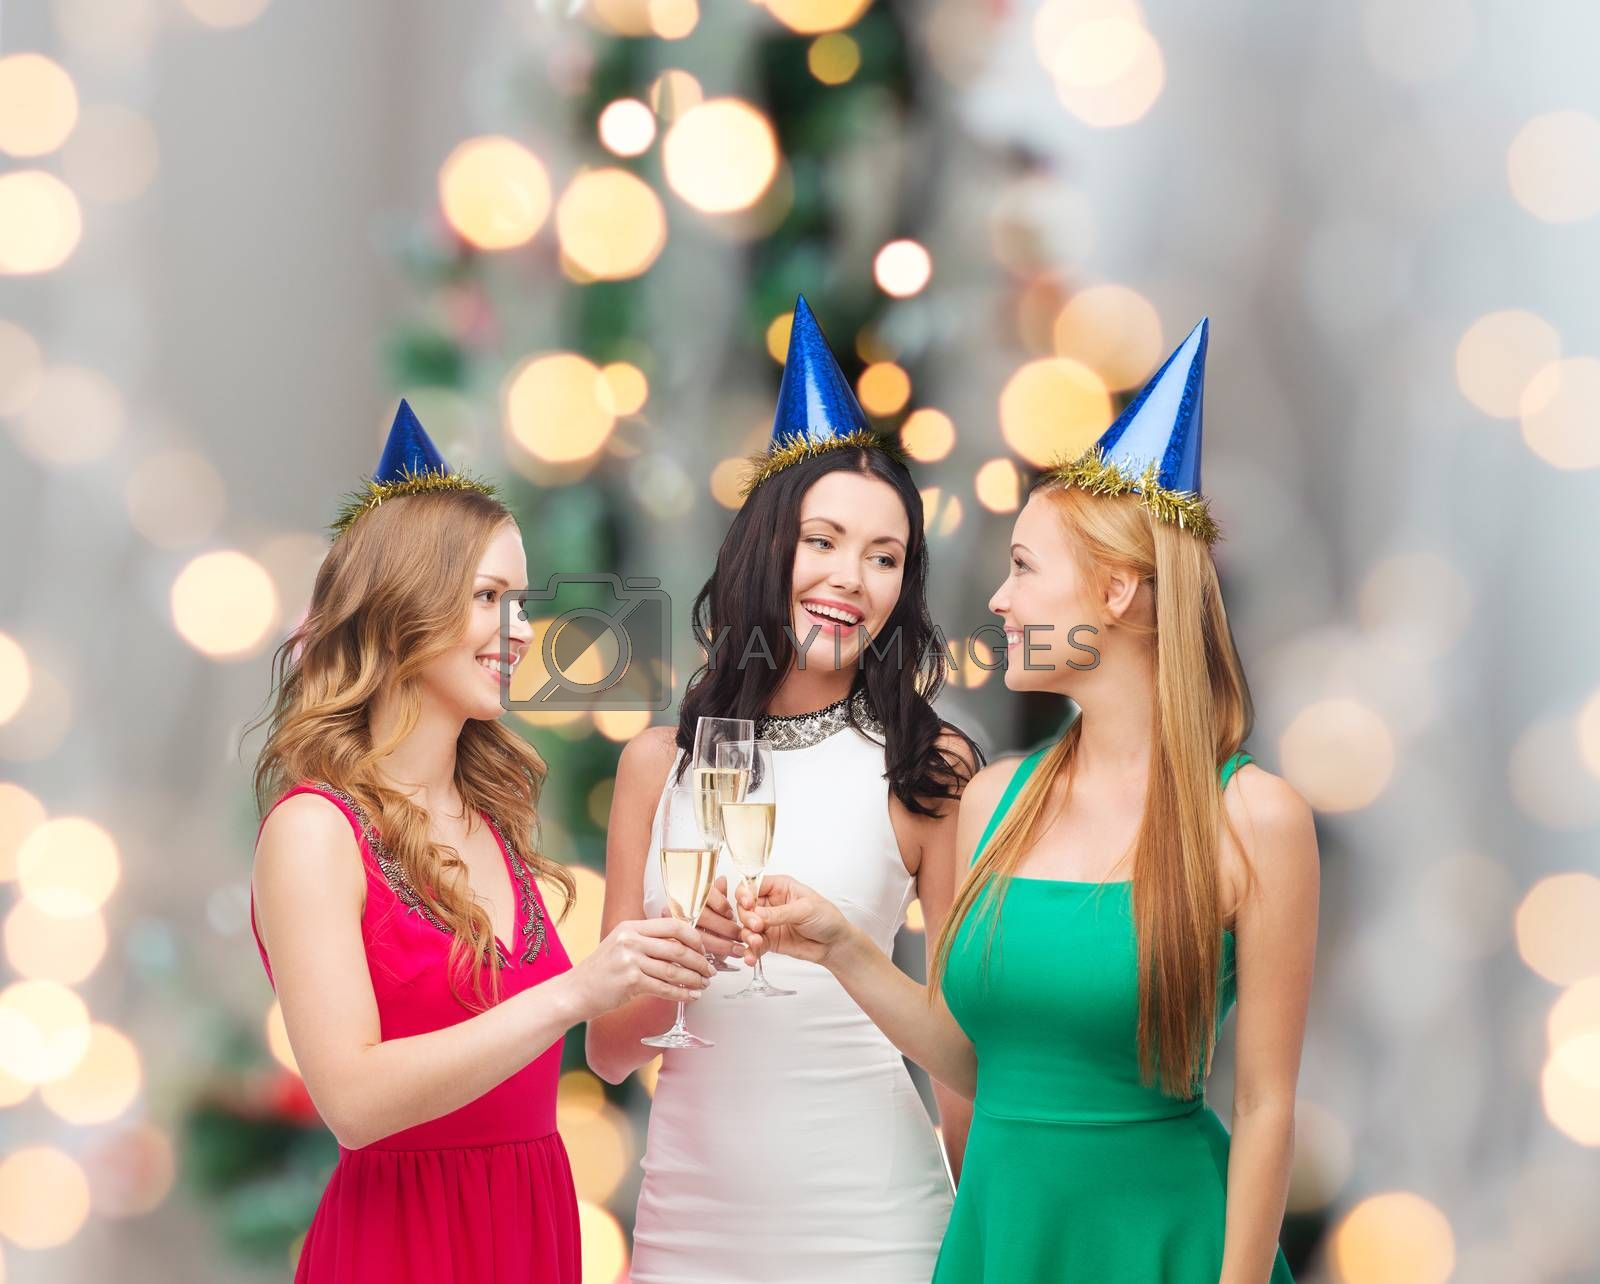 drinks, holidays, people and celebration concept - smiling women in party hats with glasses of sparkling wine over christmas tree lights background